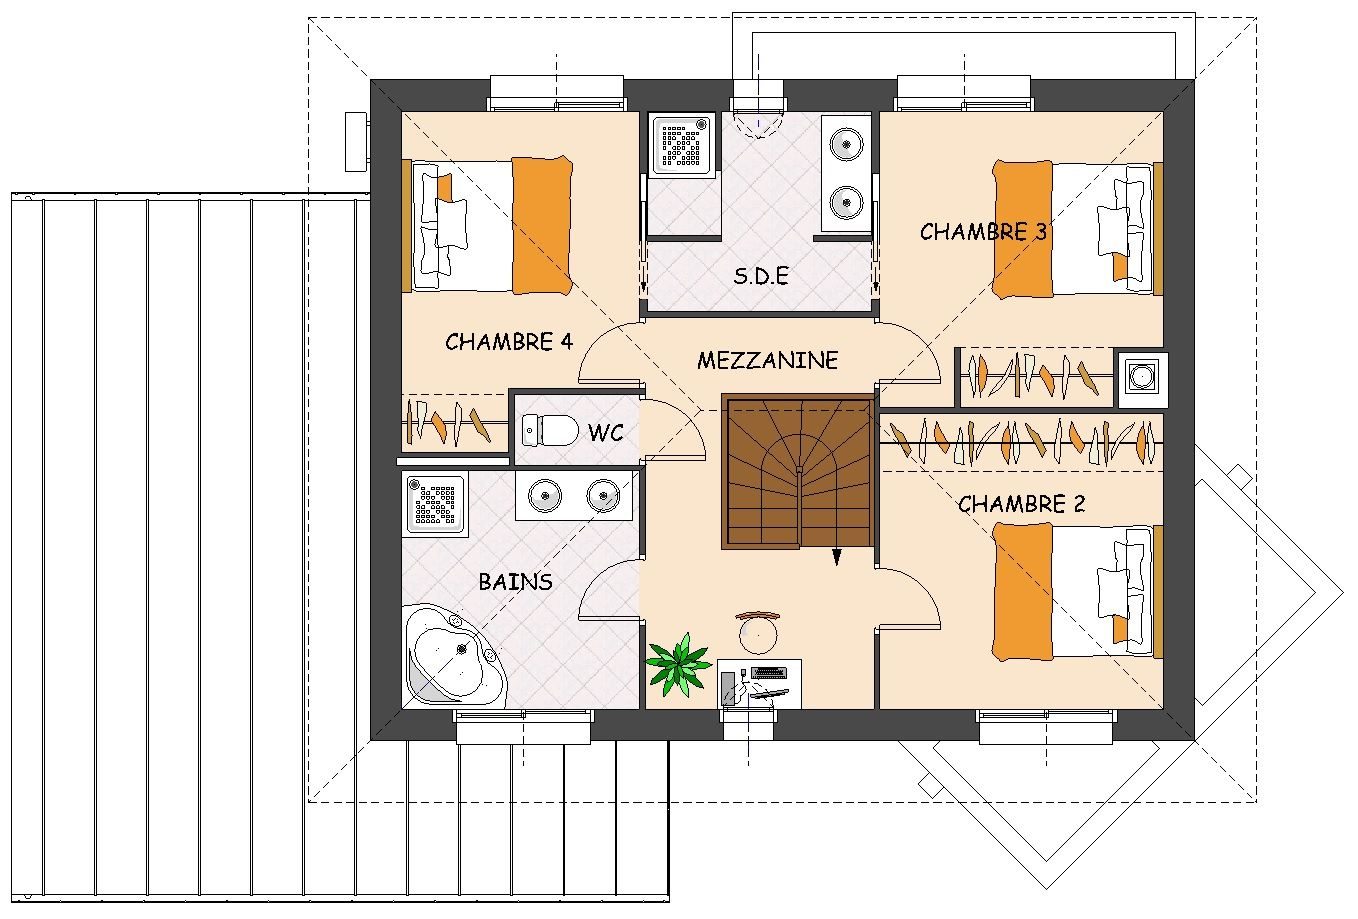 plan de maison contemporaine 4 chambres avec dressing et garage plan maison pinterest plan. Black Bedroom Furniture Sets. Home Design Ideas